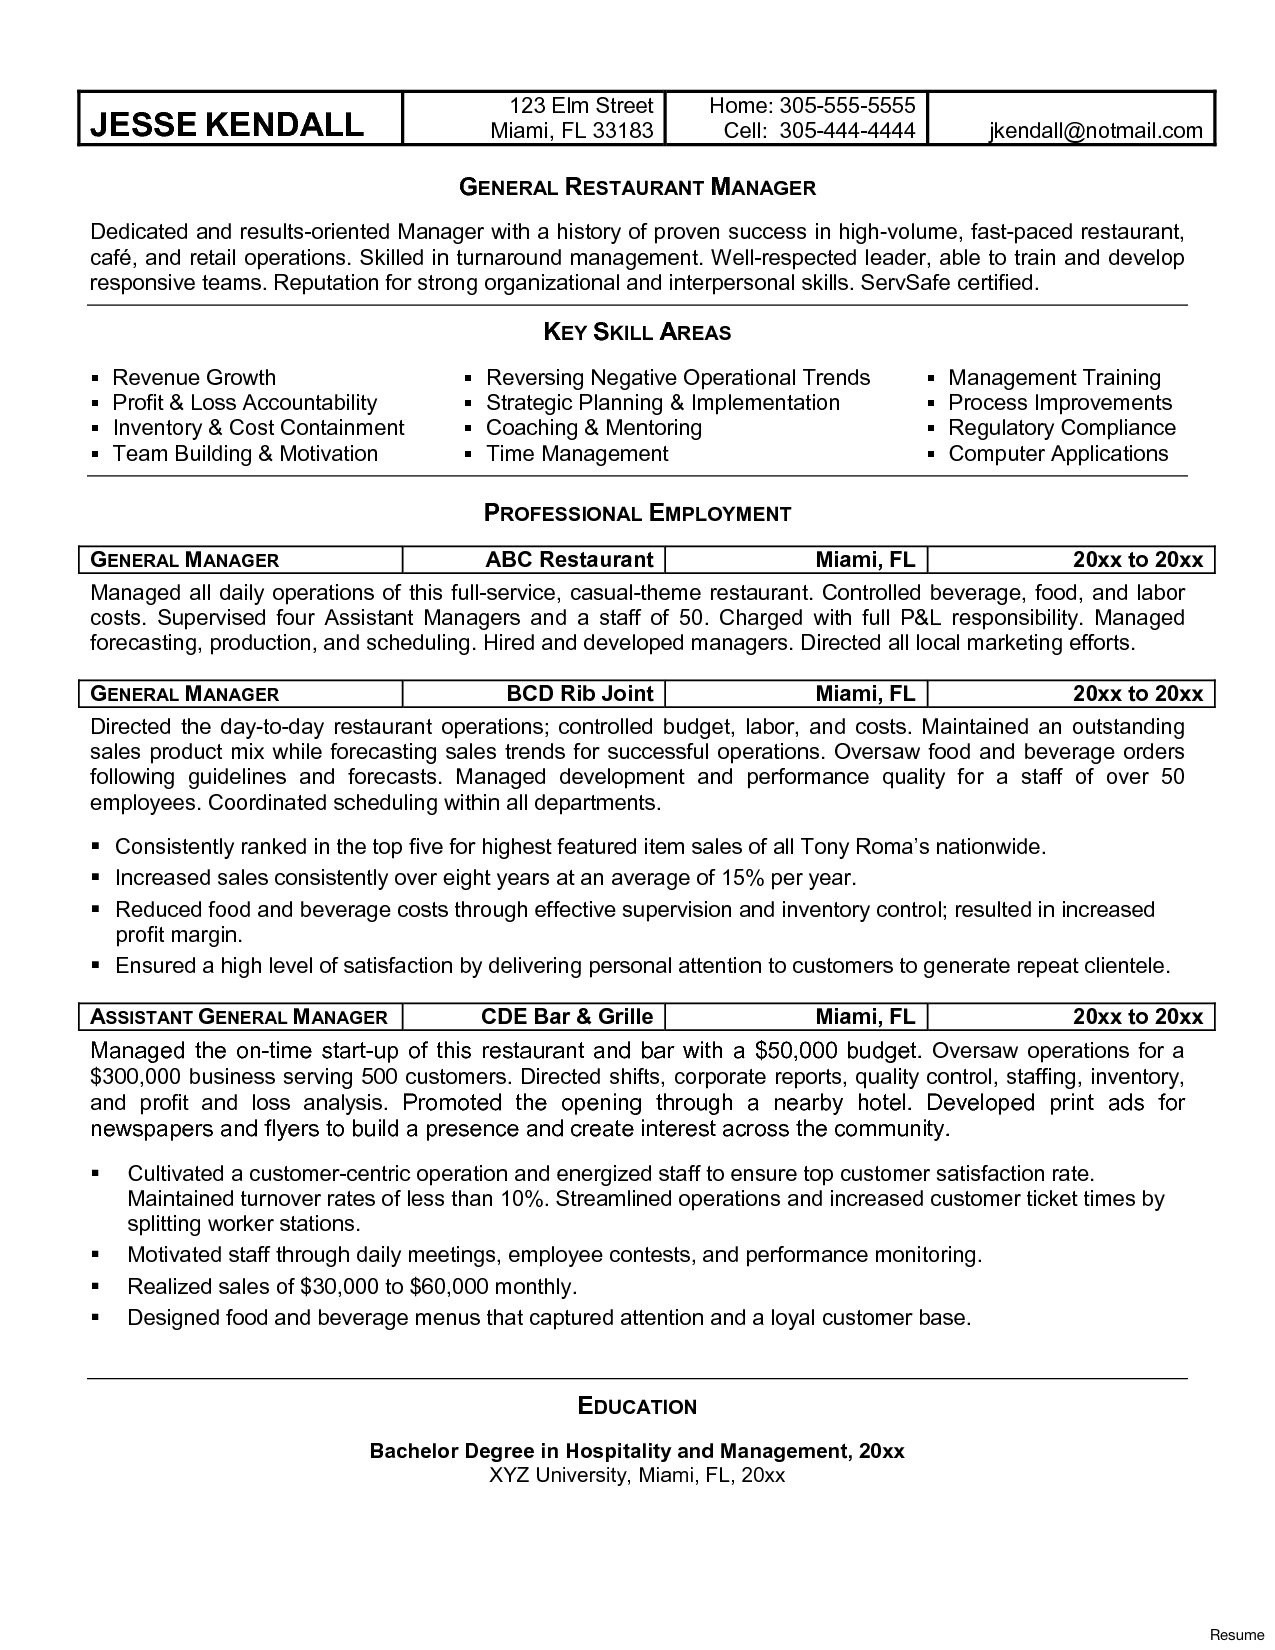 Restaurant General Manager Resume - Restaurant General Manager Resume Awesome General Manager Resume